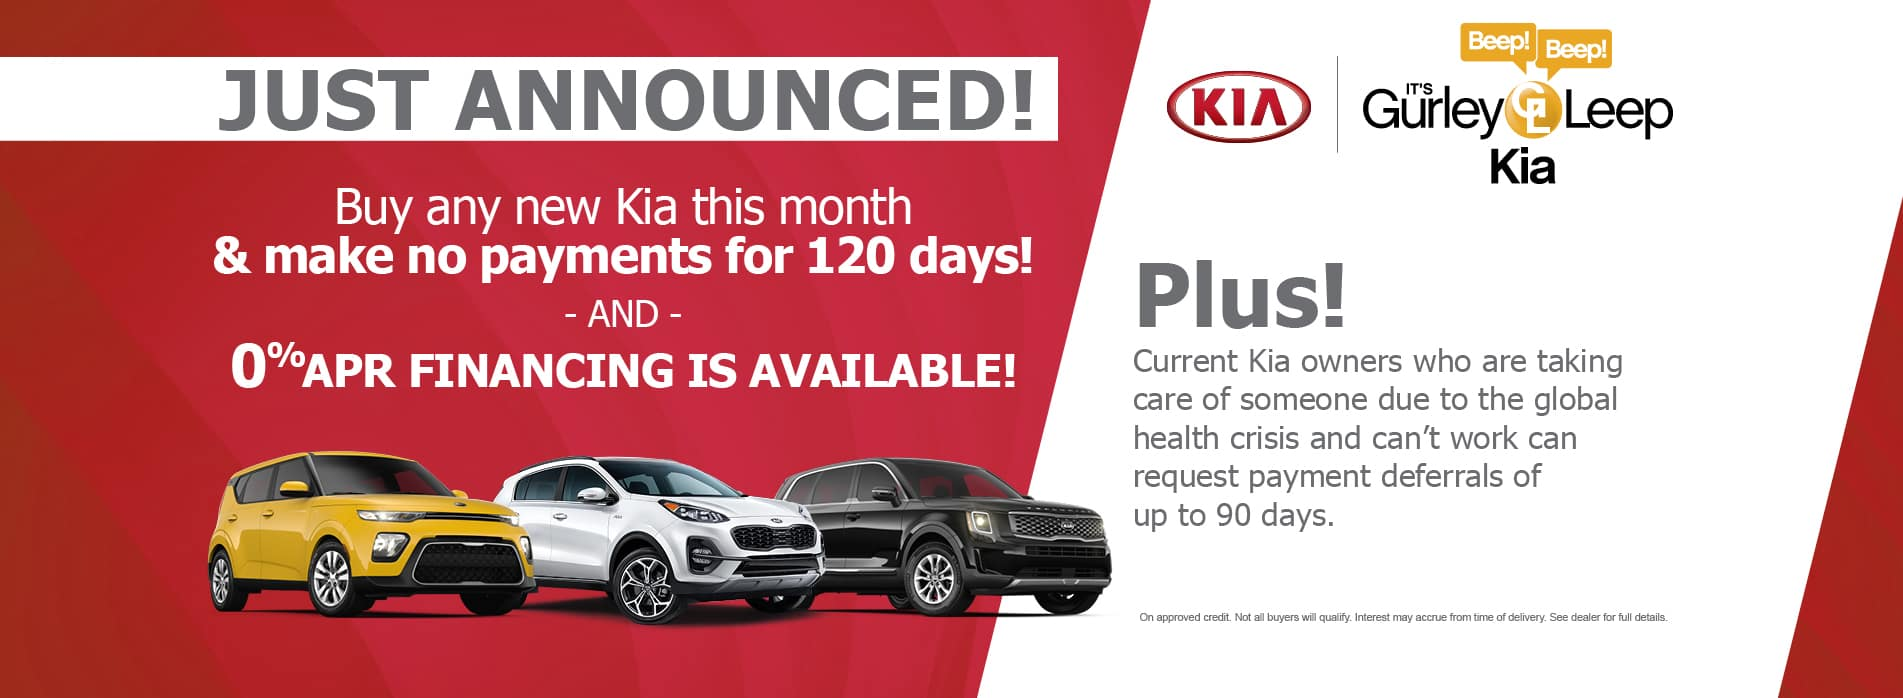 120 days no payments